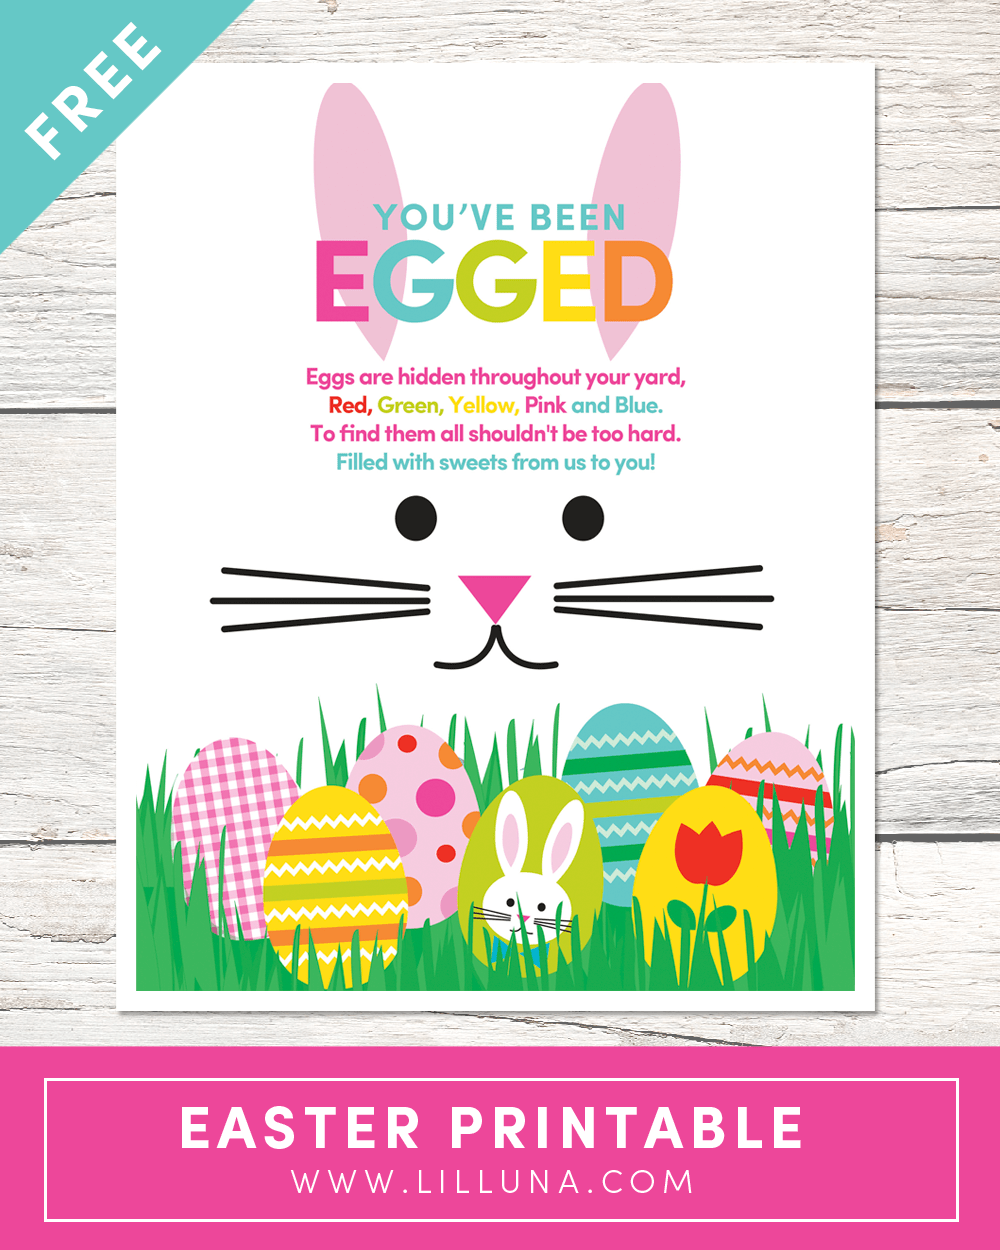 picture about You've Been Egged Printable identify Youve Been Egged Printable - Lil Luna